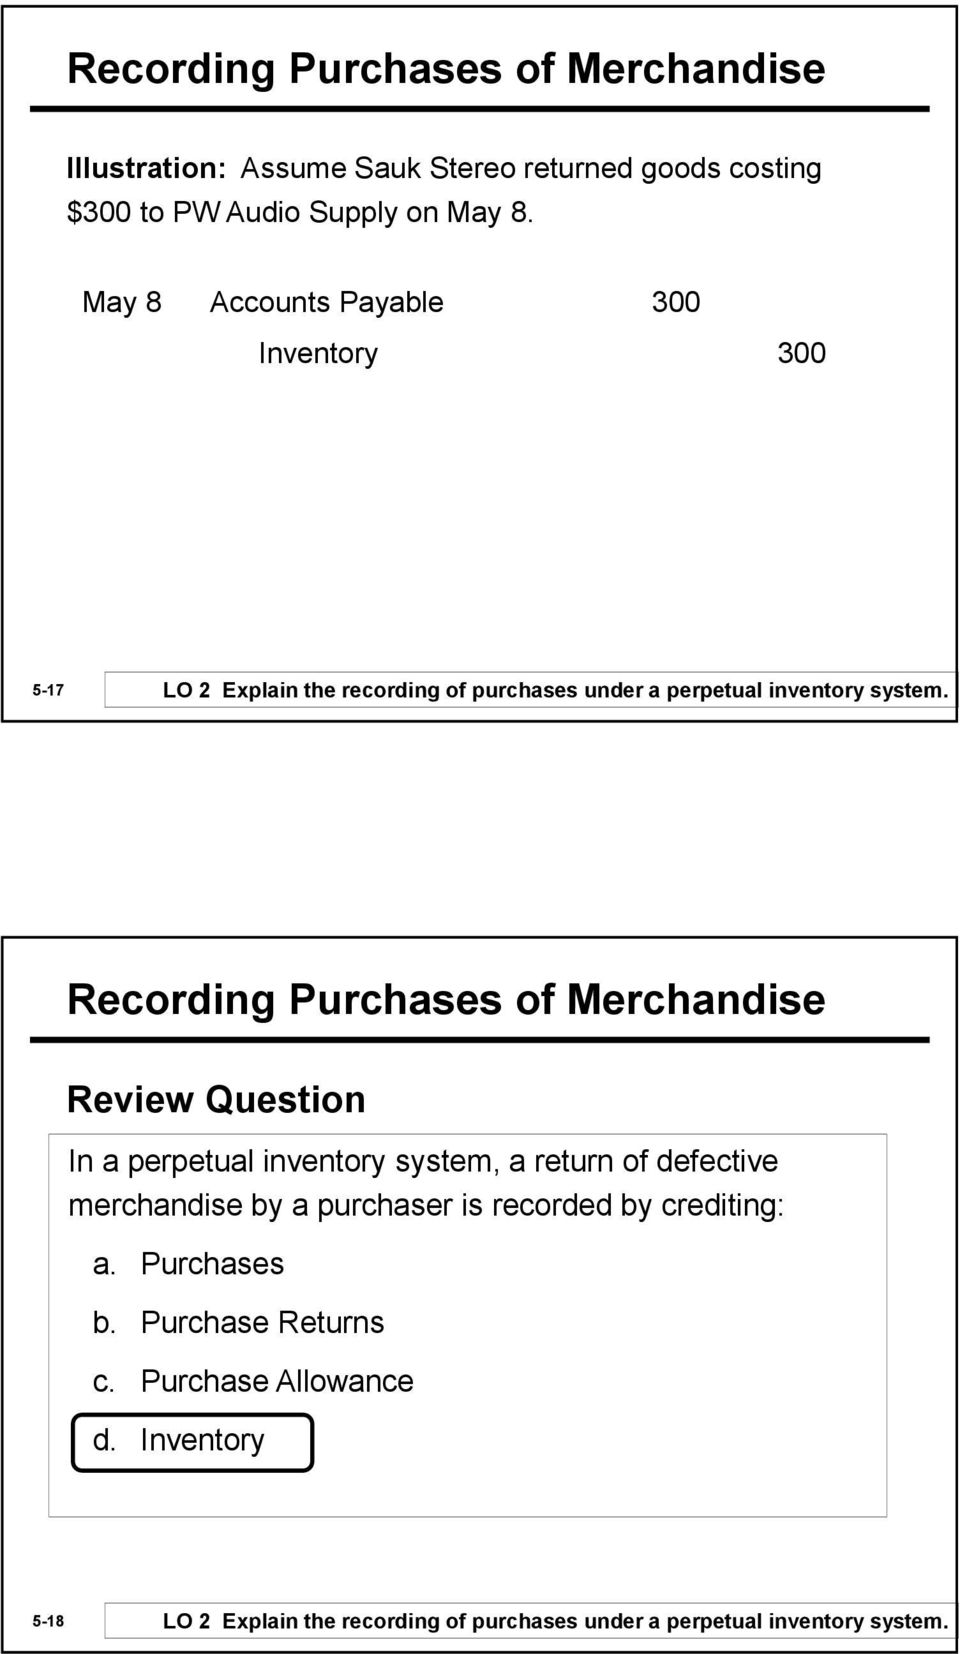 Recording Purchases of Merchandise Review Question In a perpetual inventory system, a return of defective merchandise by a purchaser is